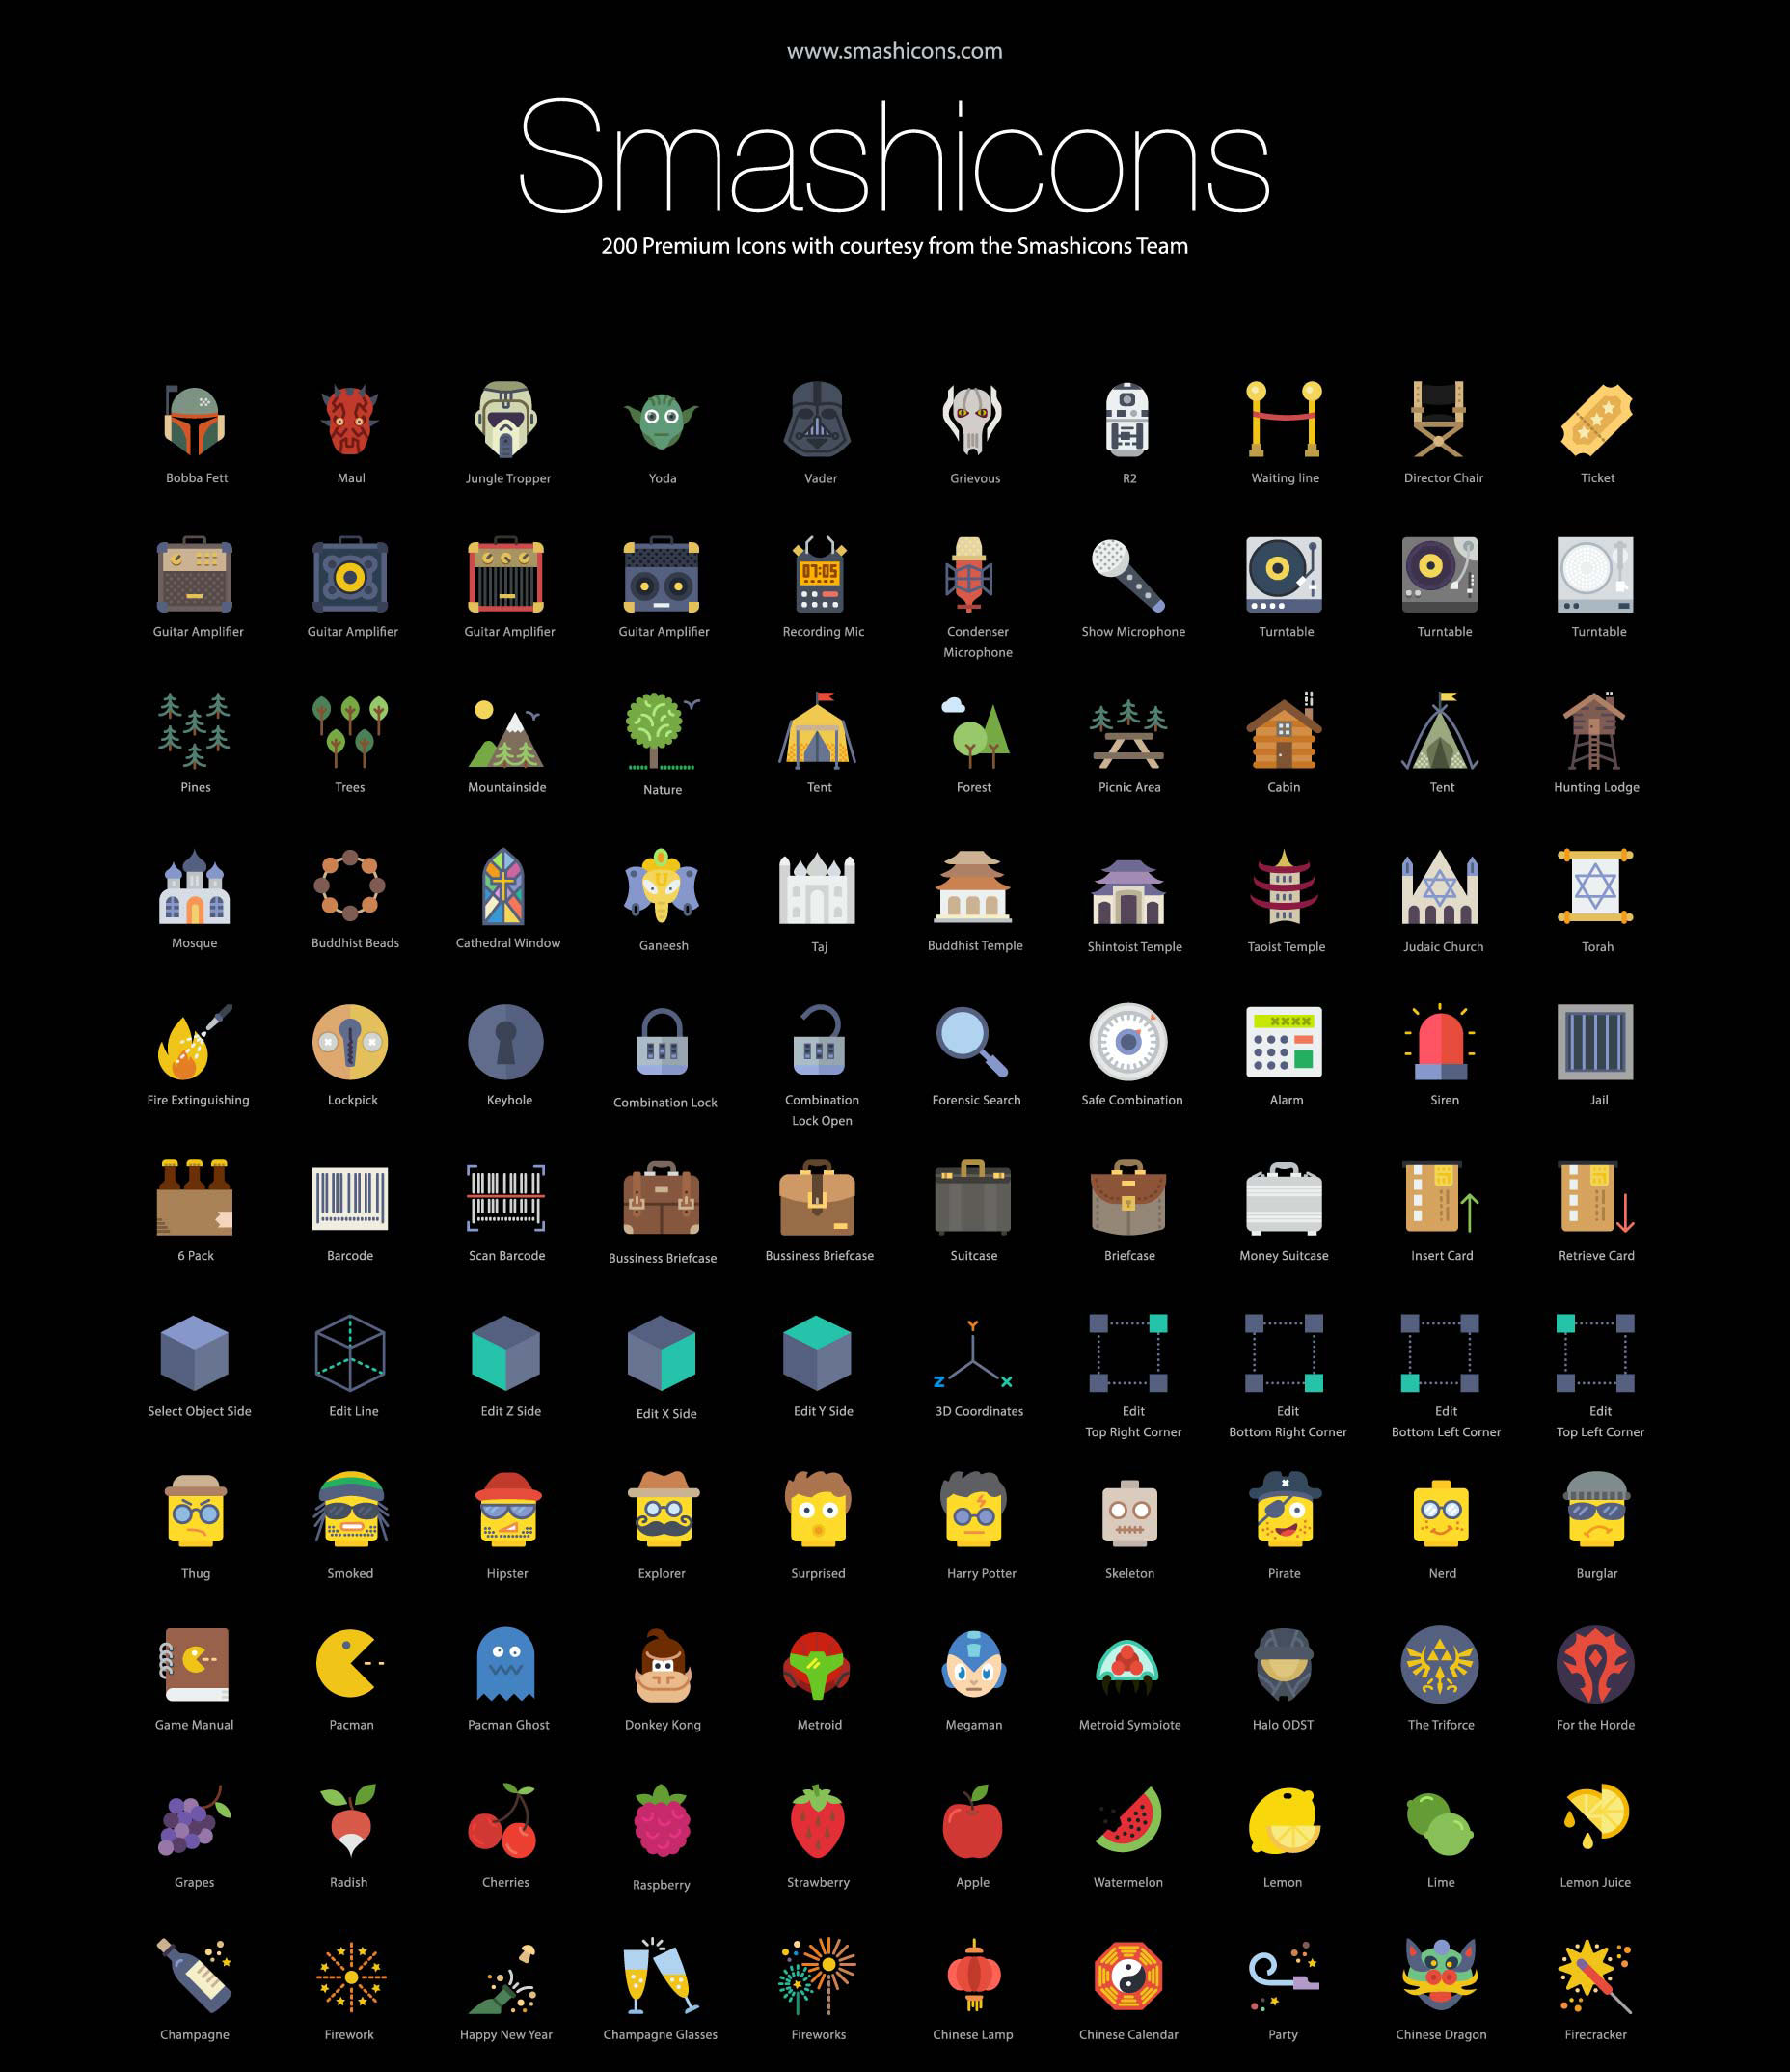 RetinaIcons - The Largest and Most Complete iOS Icon Set in the World